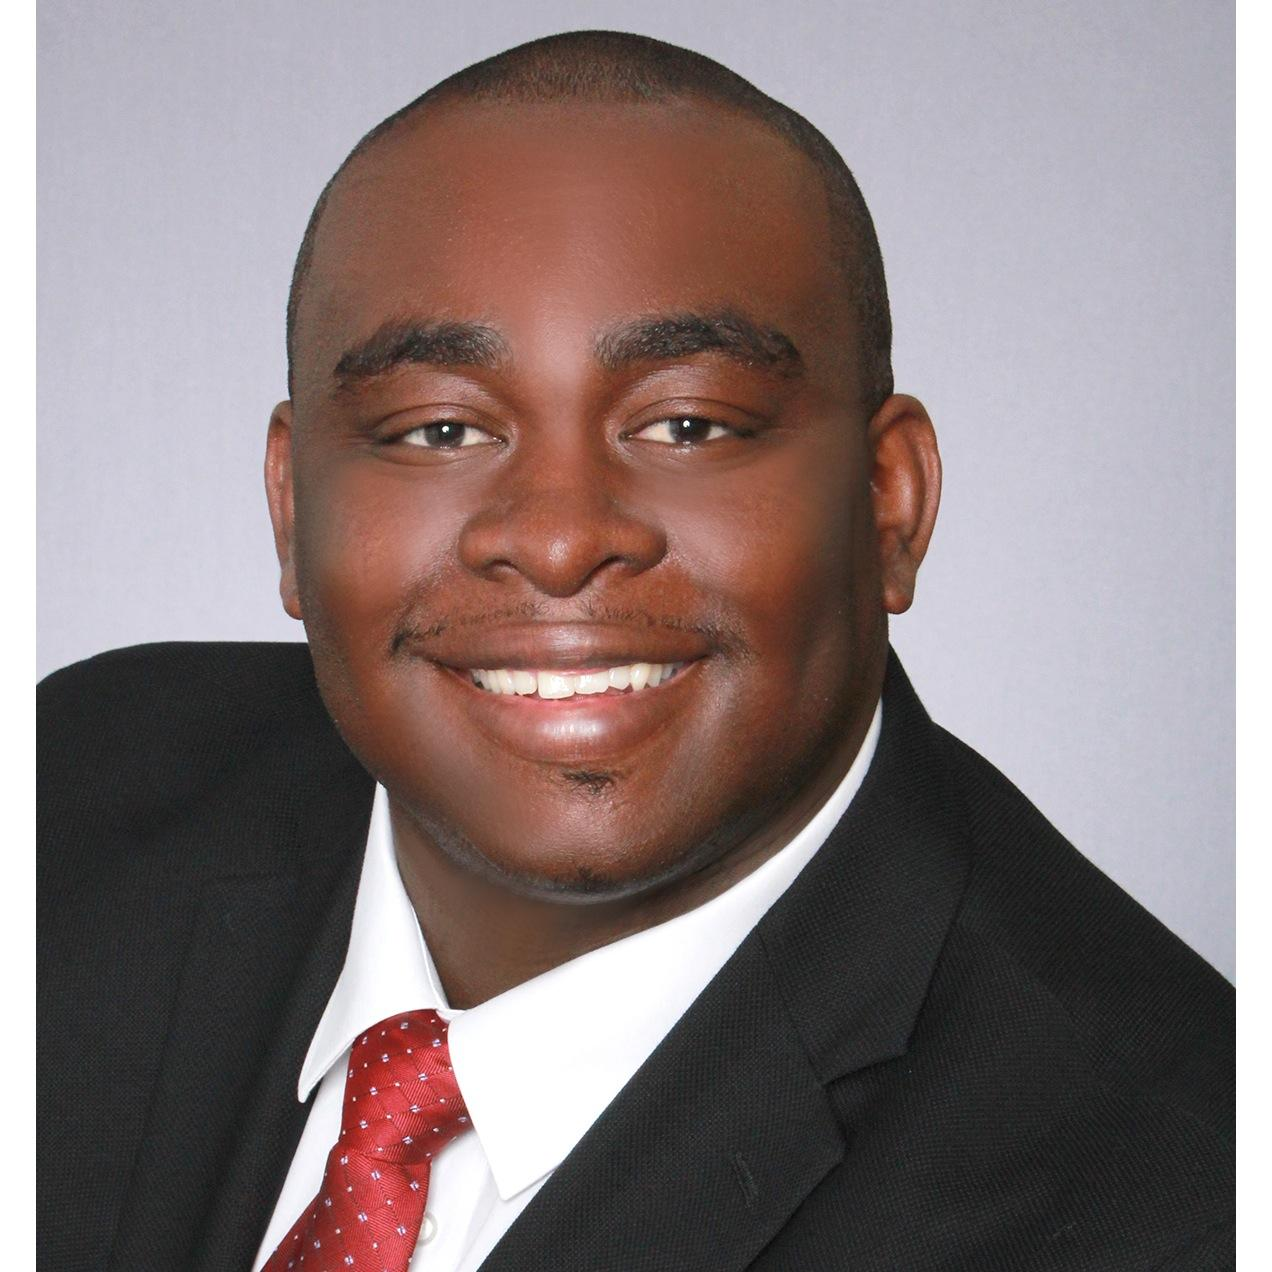 Keller Williams Realtor 174 Javaughn Spencer In Bluffton Sc